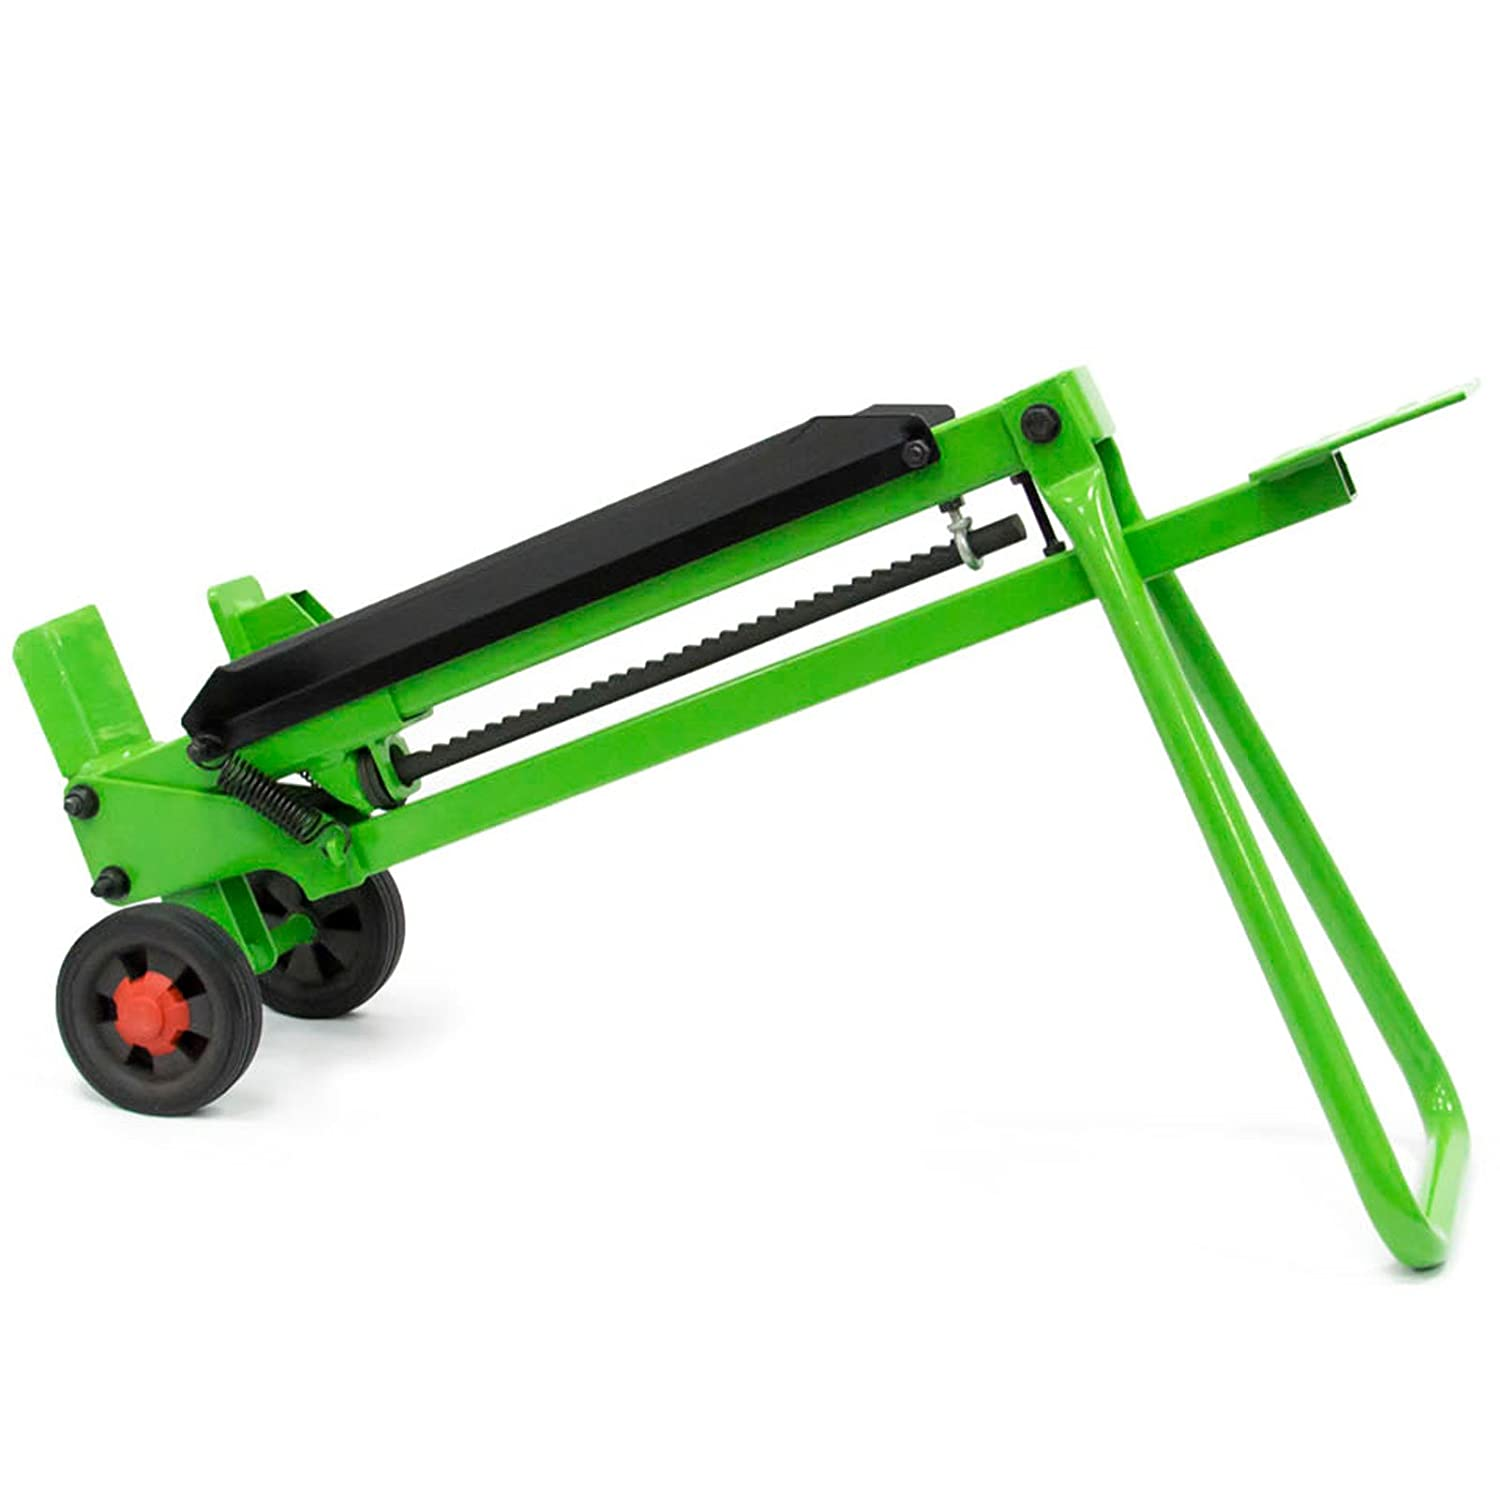 The Handy Foot Operated Log splitter